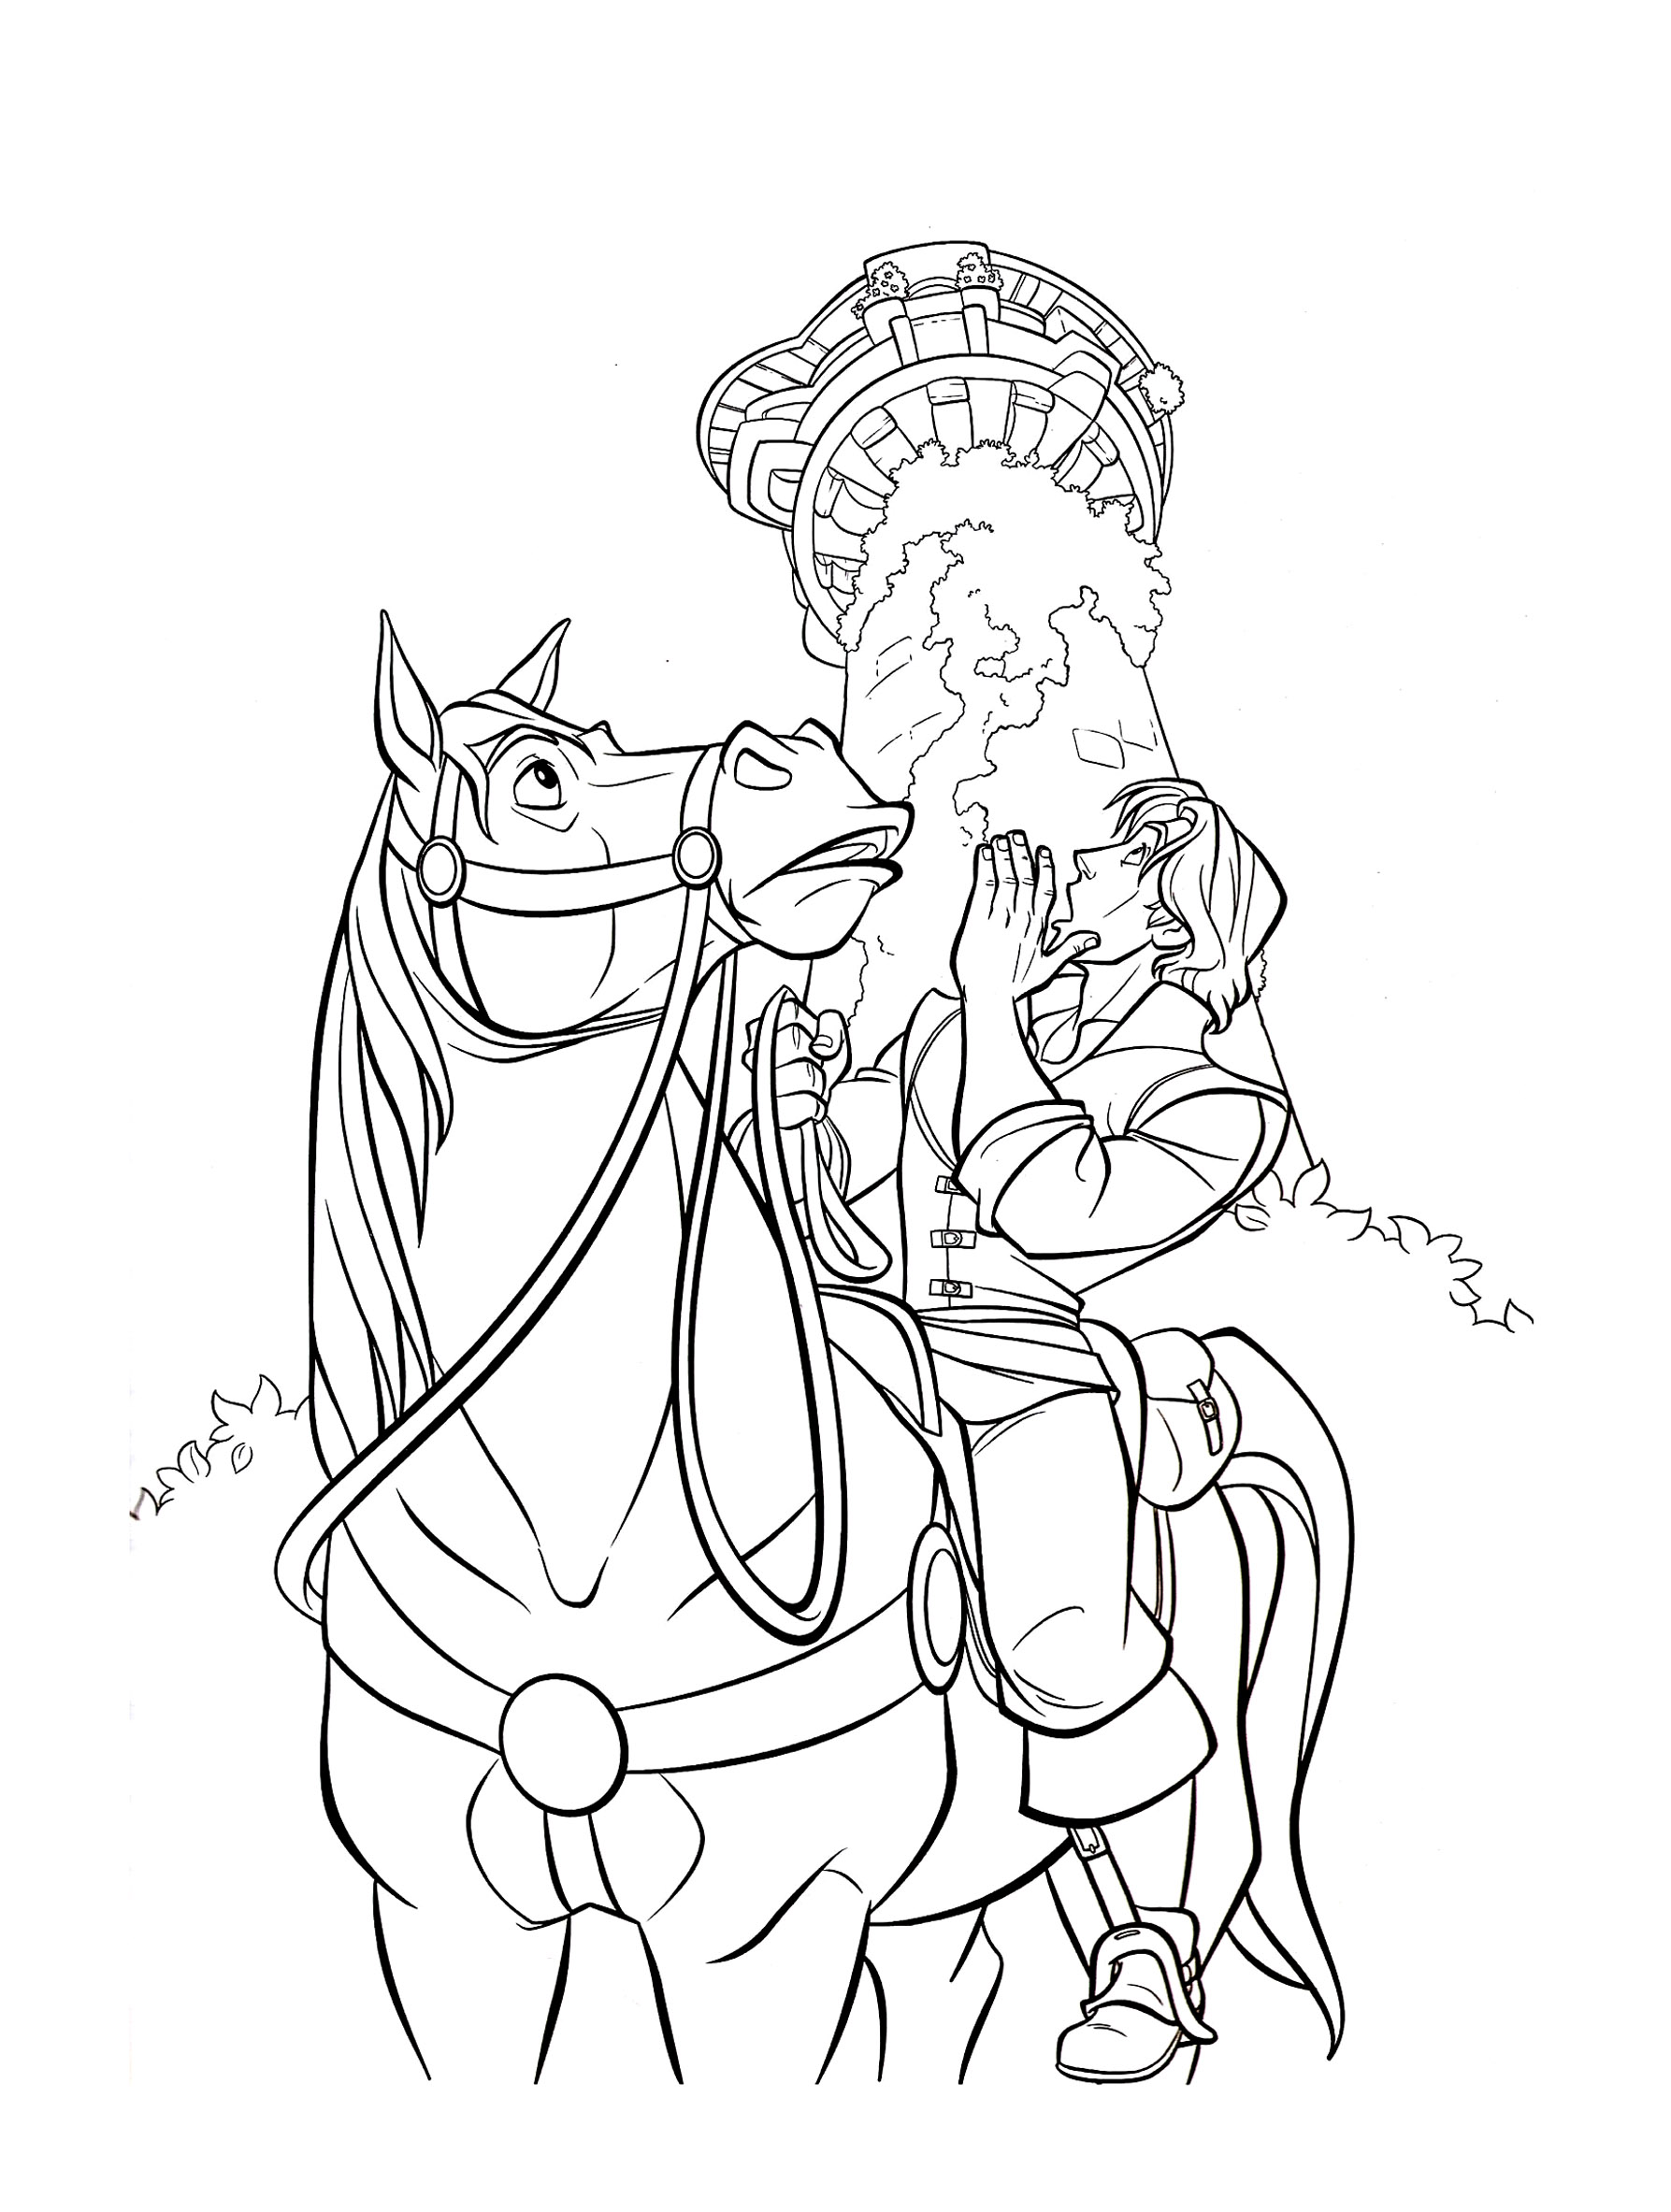 Tangled For Kids Tangled Kids Coloring Pages